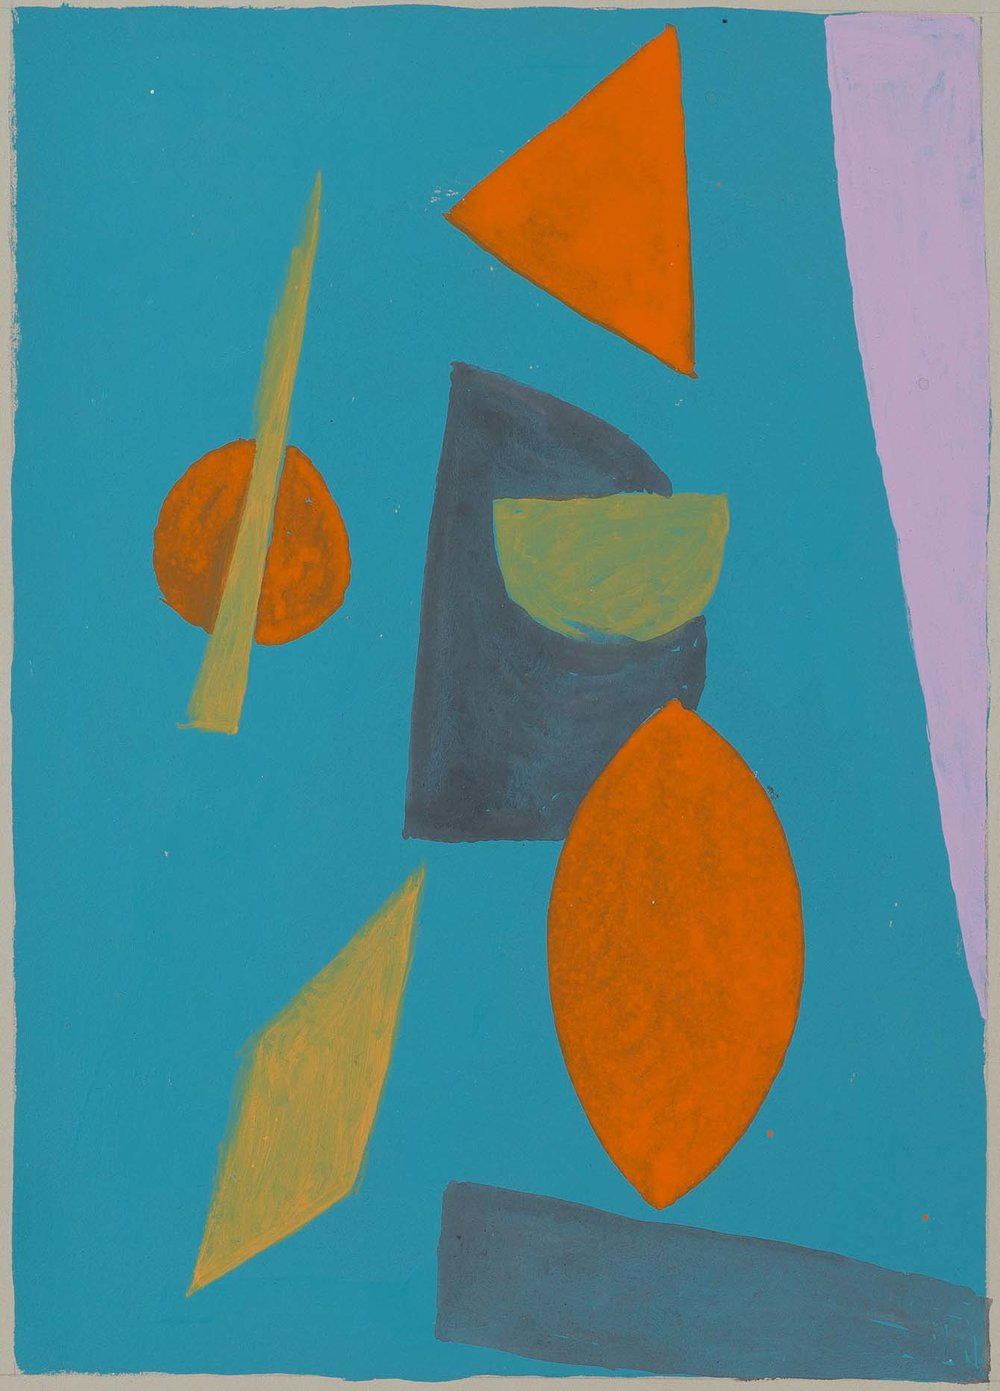 Peter Young,  #28 - 1989 , 1989, Acrylic on paper, 15 x 11.5 inches (38.1 x 29.2 cm)